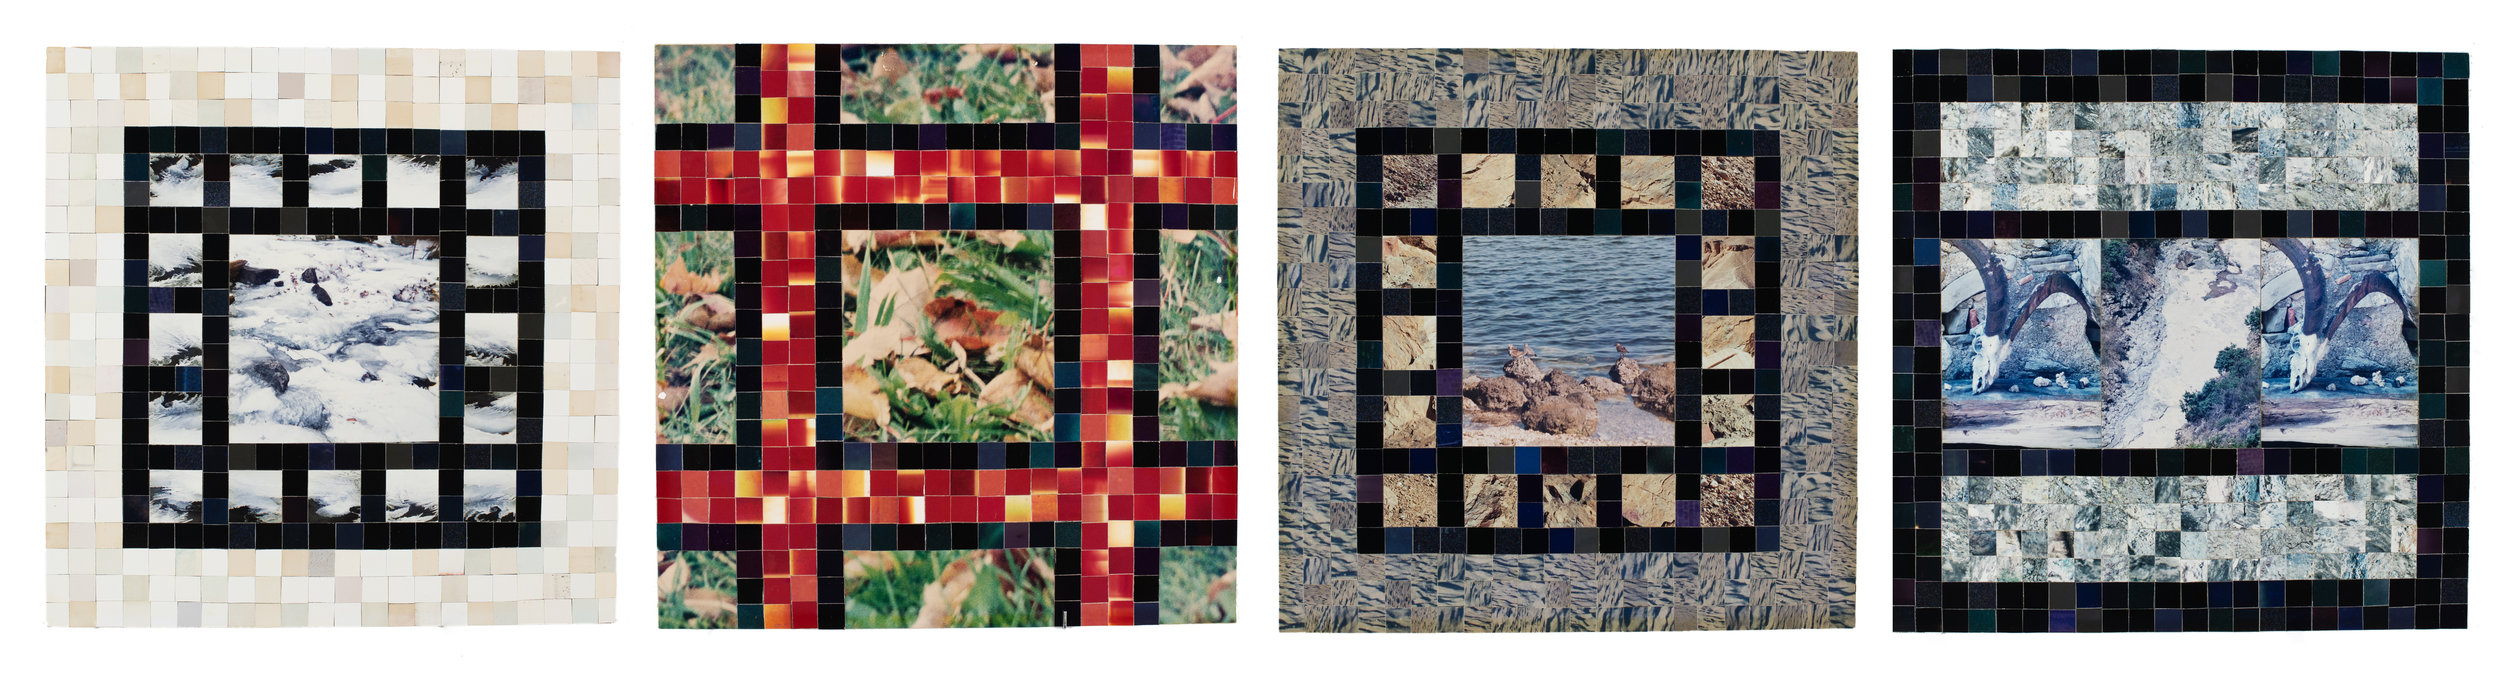 HARRY ERIKSEN   Small Gardens Series  photocollage 13 x 13 inches each